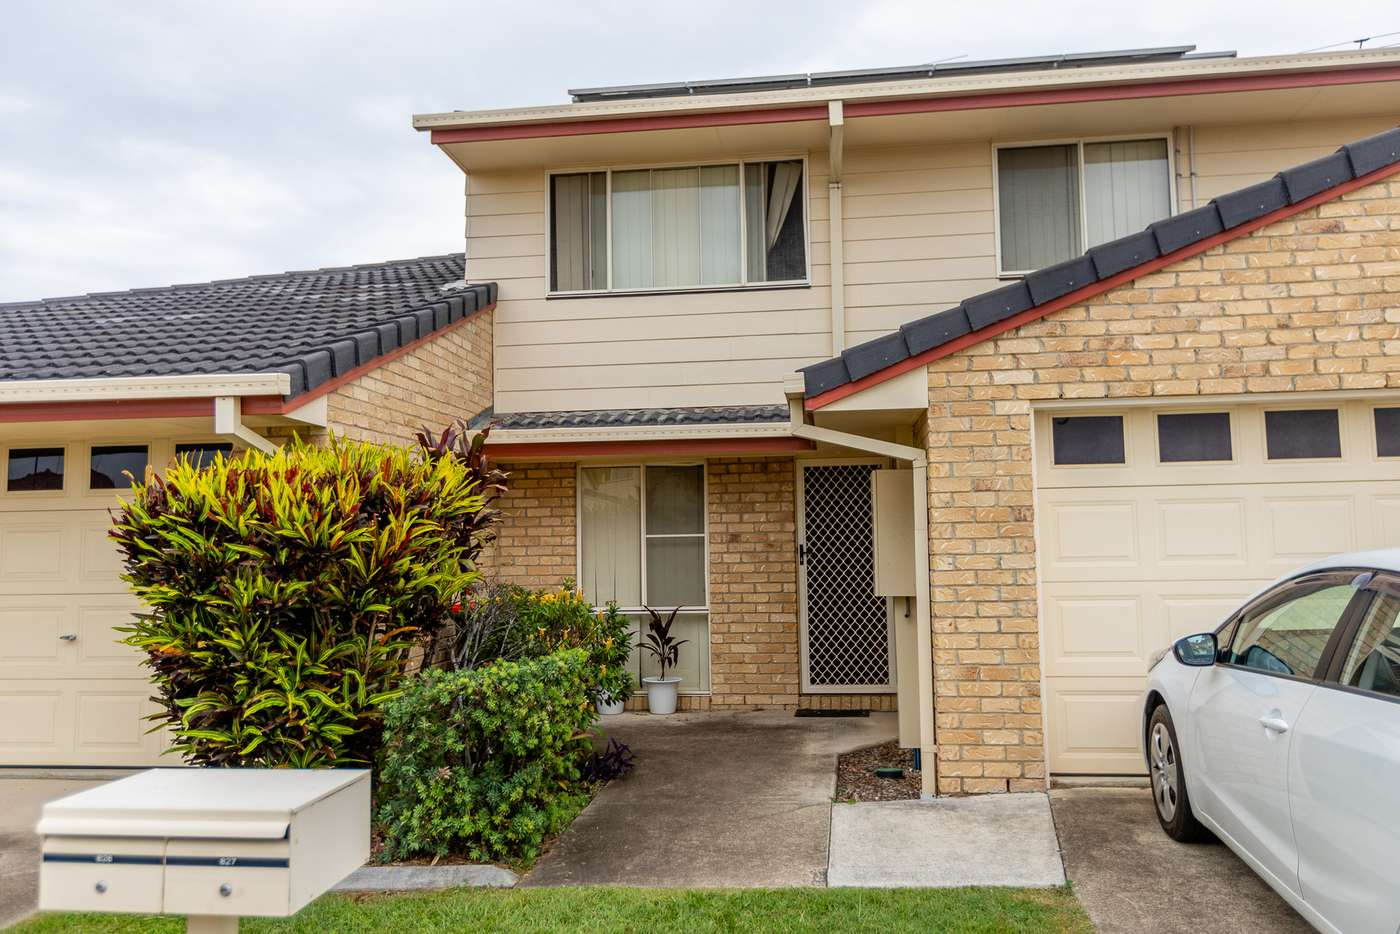 Main view of Homely townhouse listing, 827/2 Nicol Way, Brendale QLD 4500